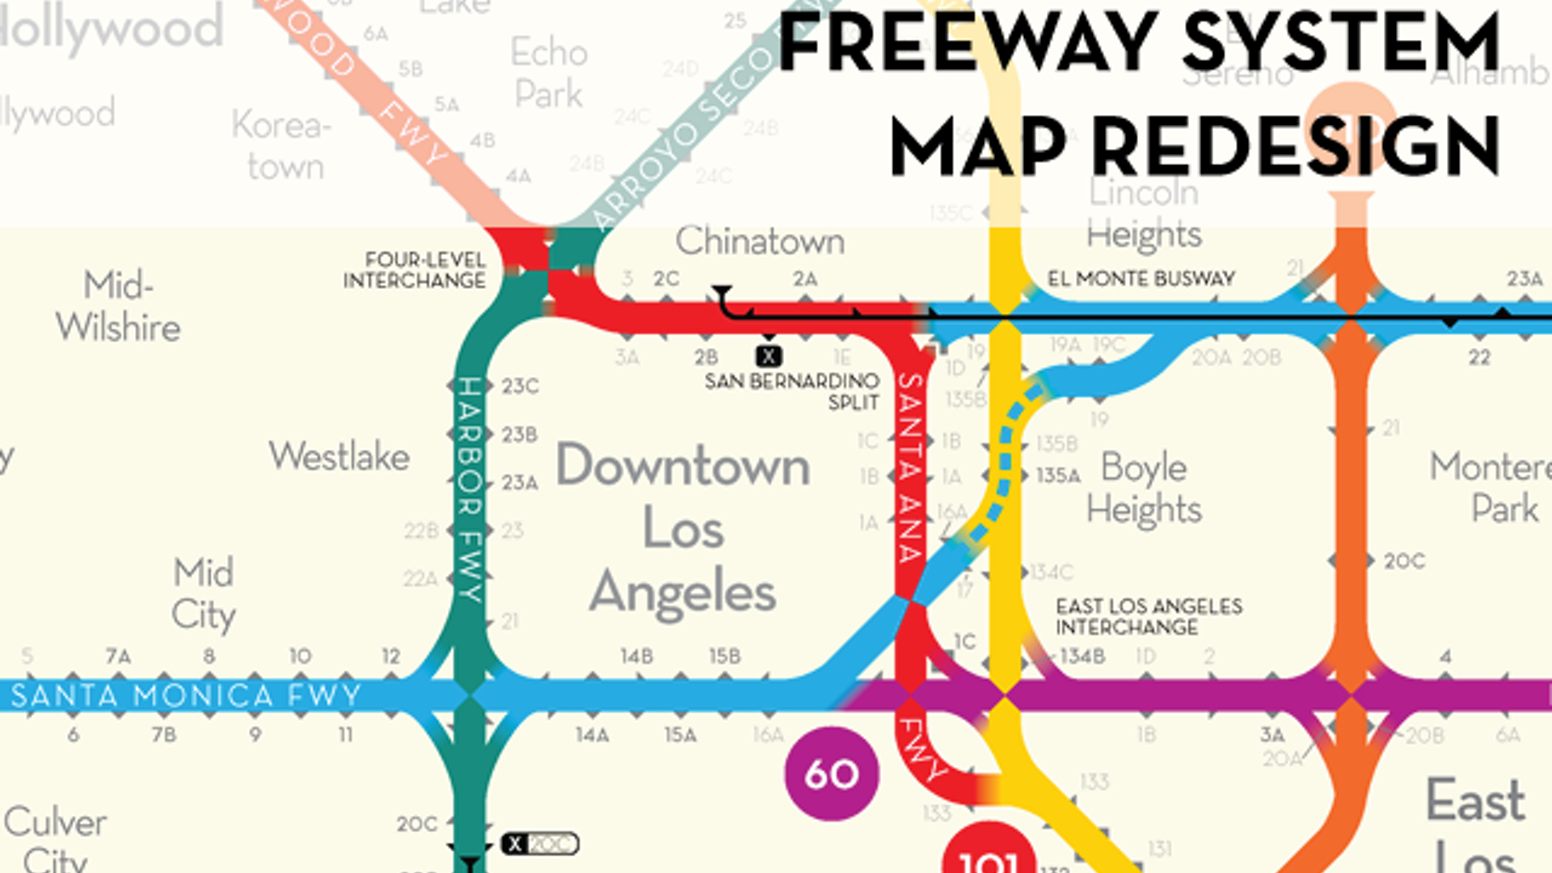 Subway Map Schedule.Los Angeles Freeway Map Redesigned By Peter Dunn Map Updates And